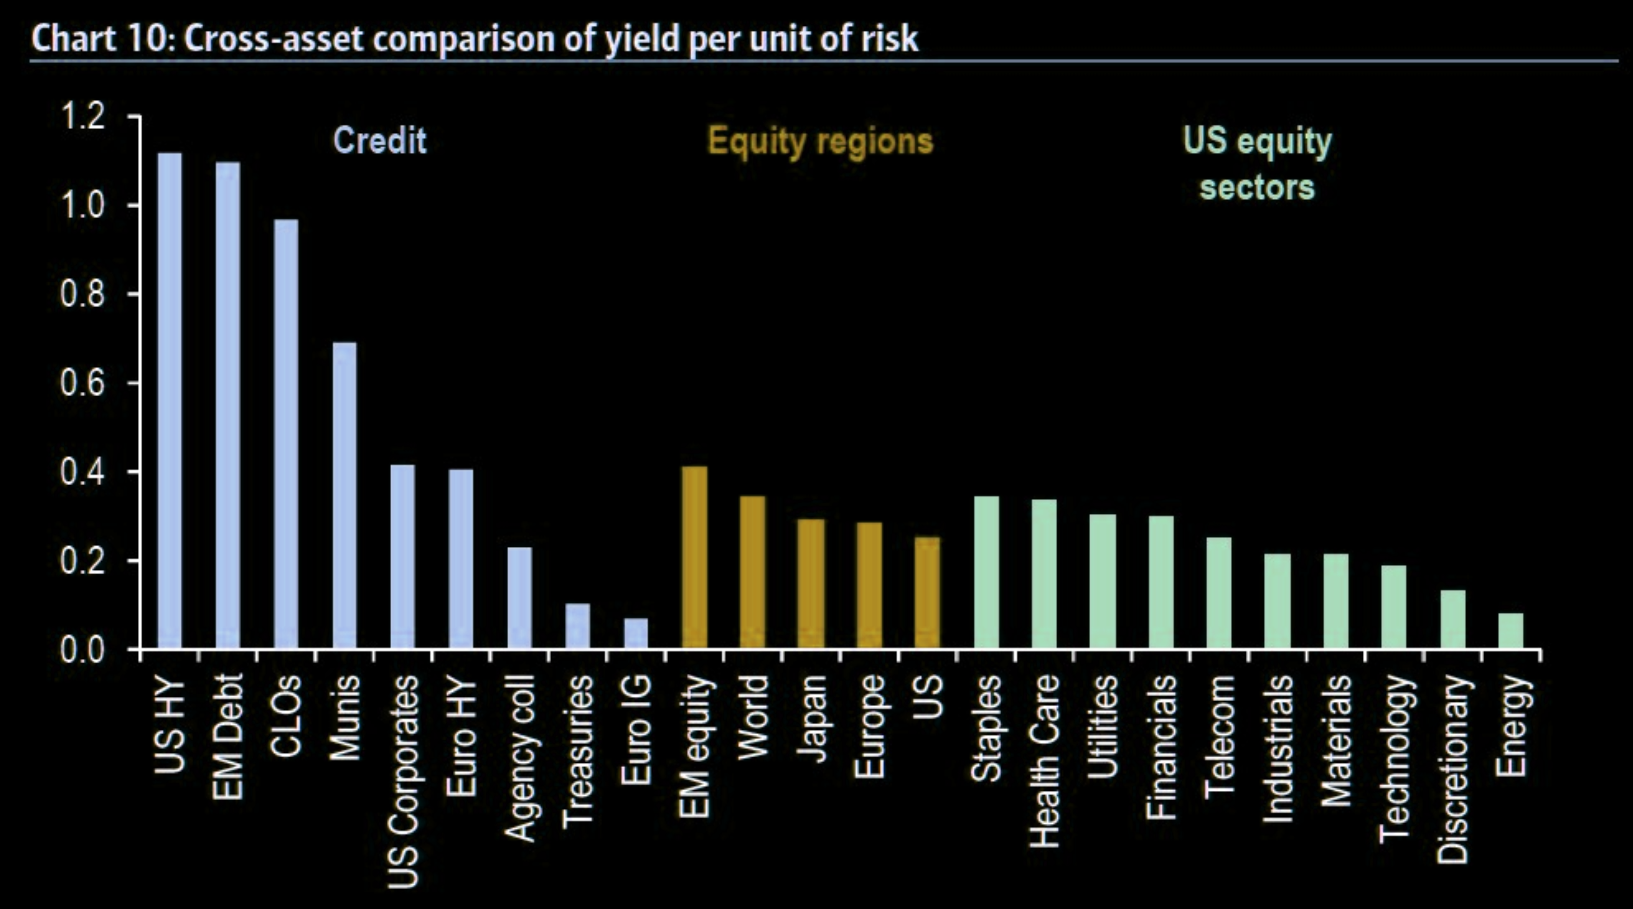 Cross-asset comparison of yield per unit of risk